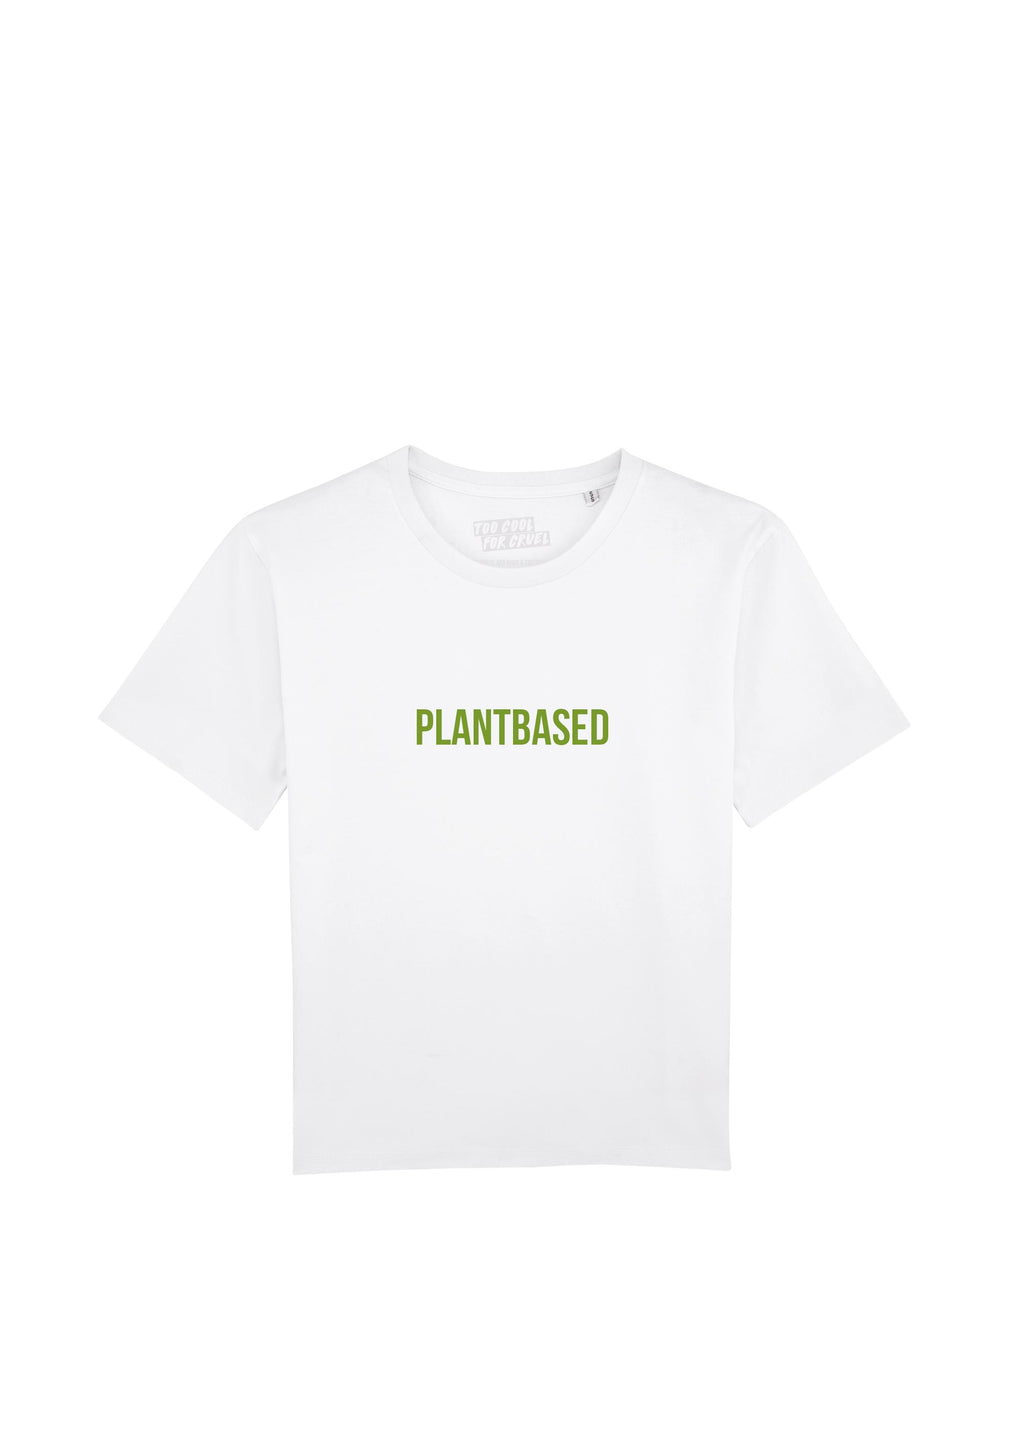 PLANTBASED SHIRT (women)